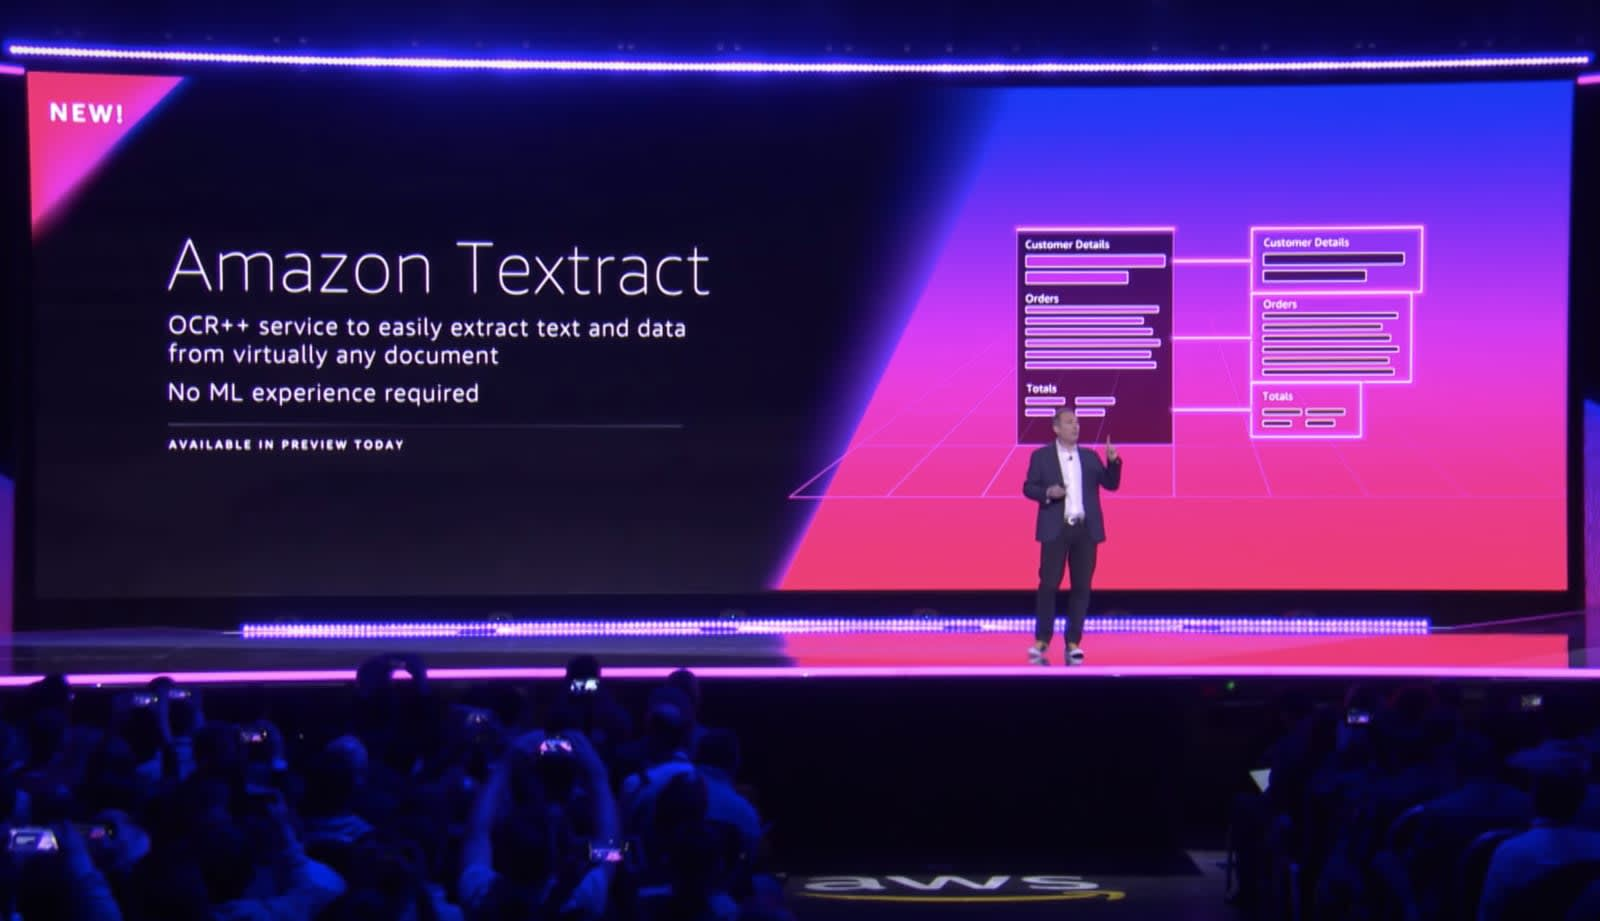 Amazon's Textract AI can read millions of pages in a few hours